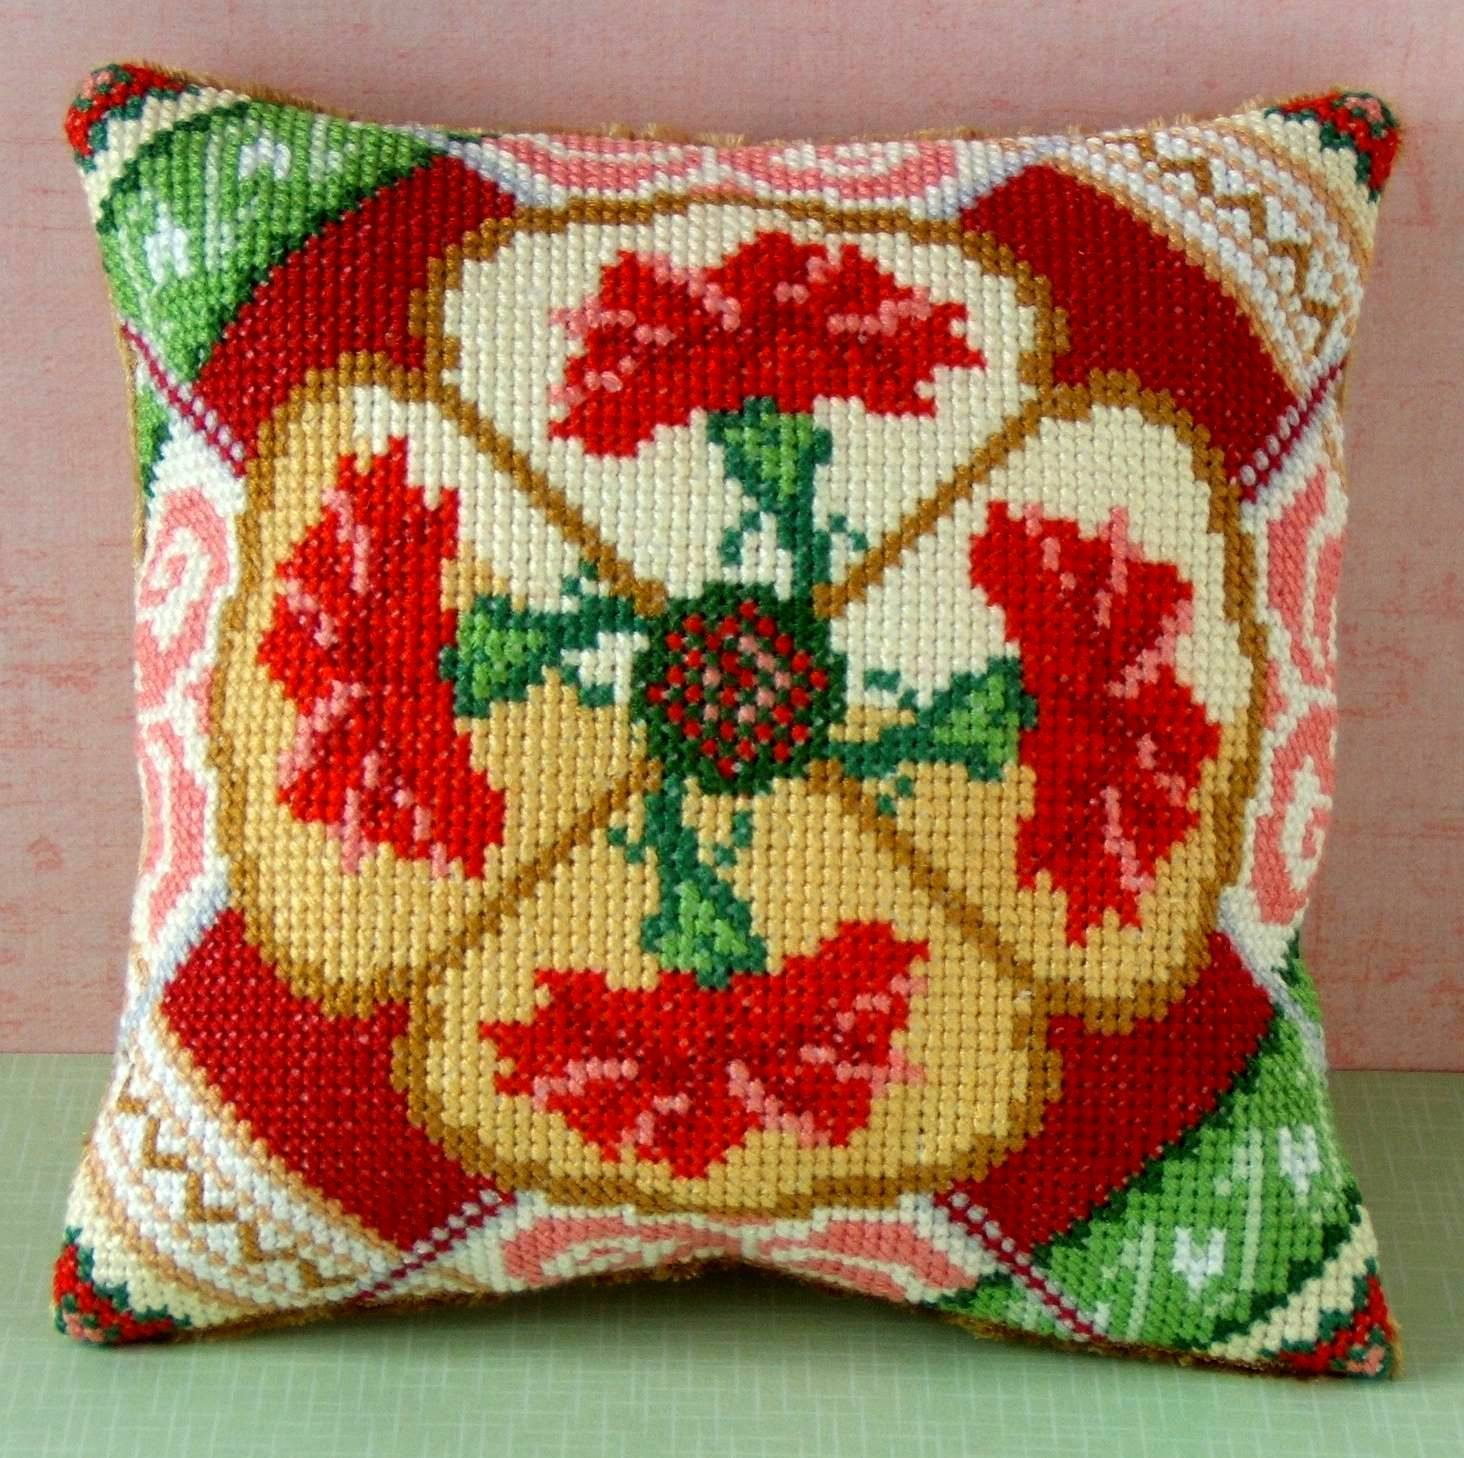 January Mini Cushion Cross Stitch Kit